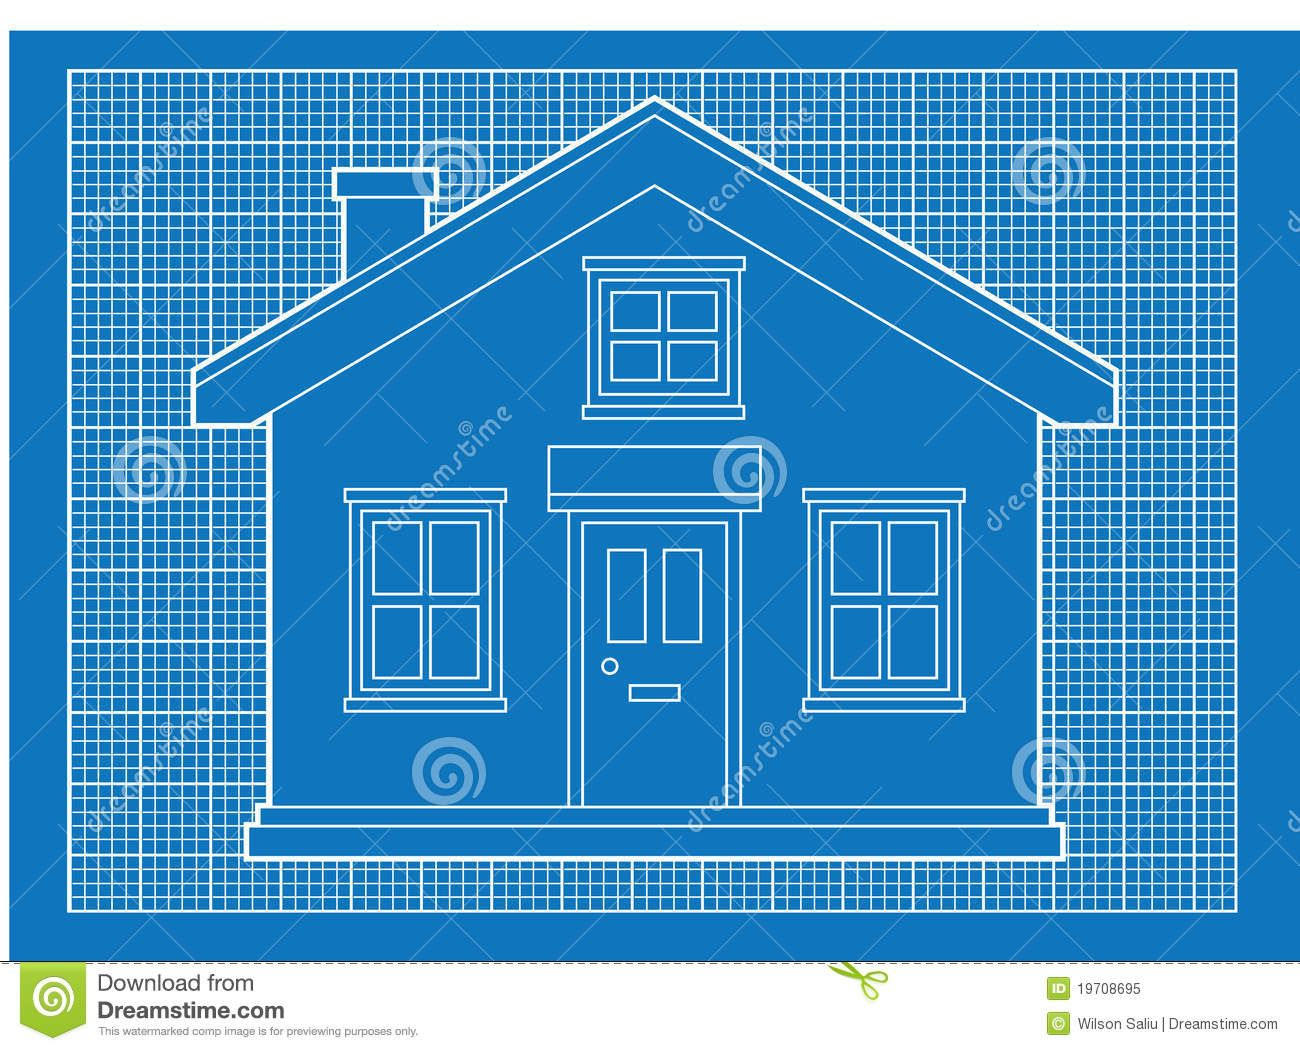 Simple house blueprints royalty free stock photo image blueprint simple house blueprints royalty free stock photo image blueprint images malvernweather Image collections